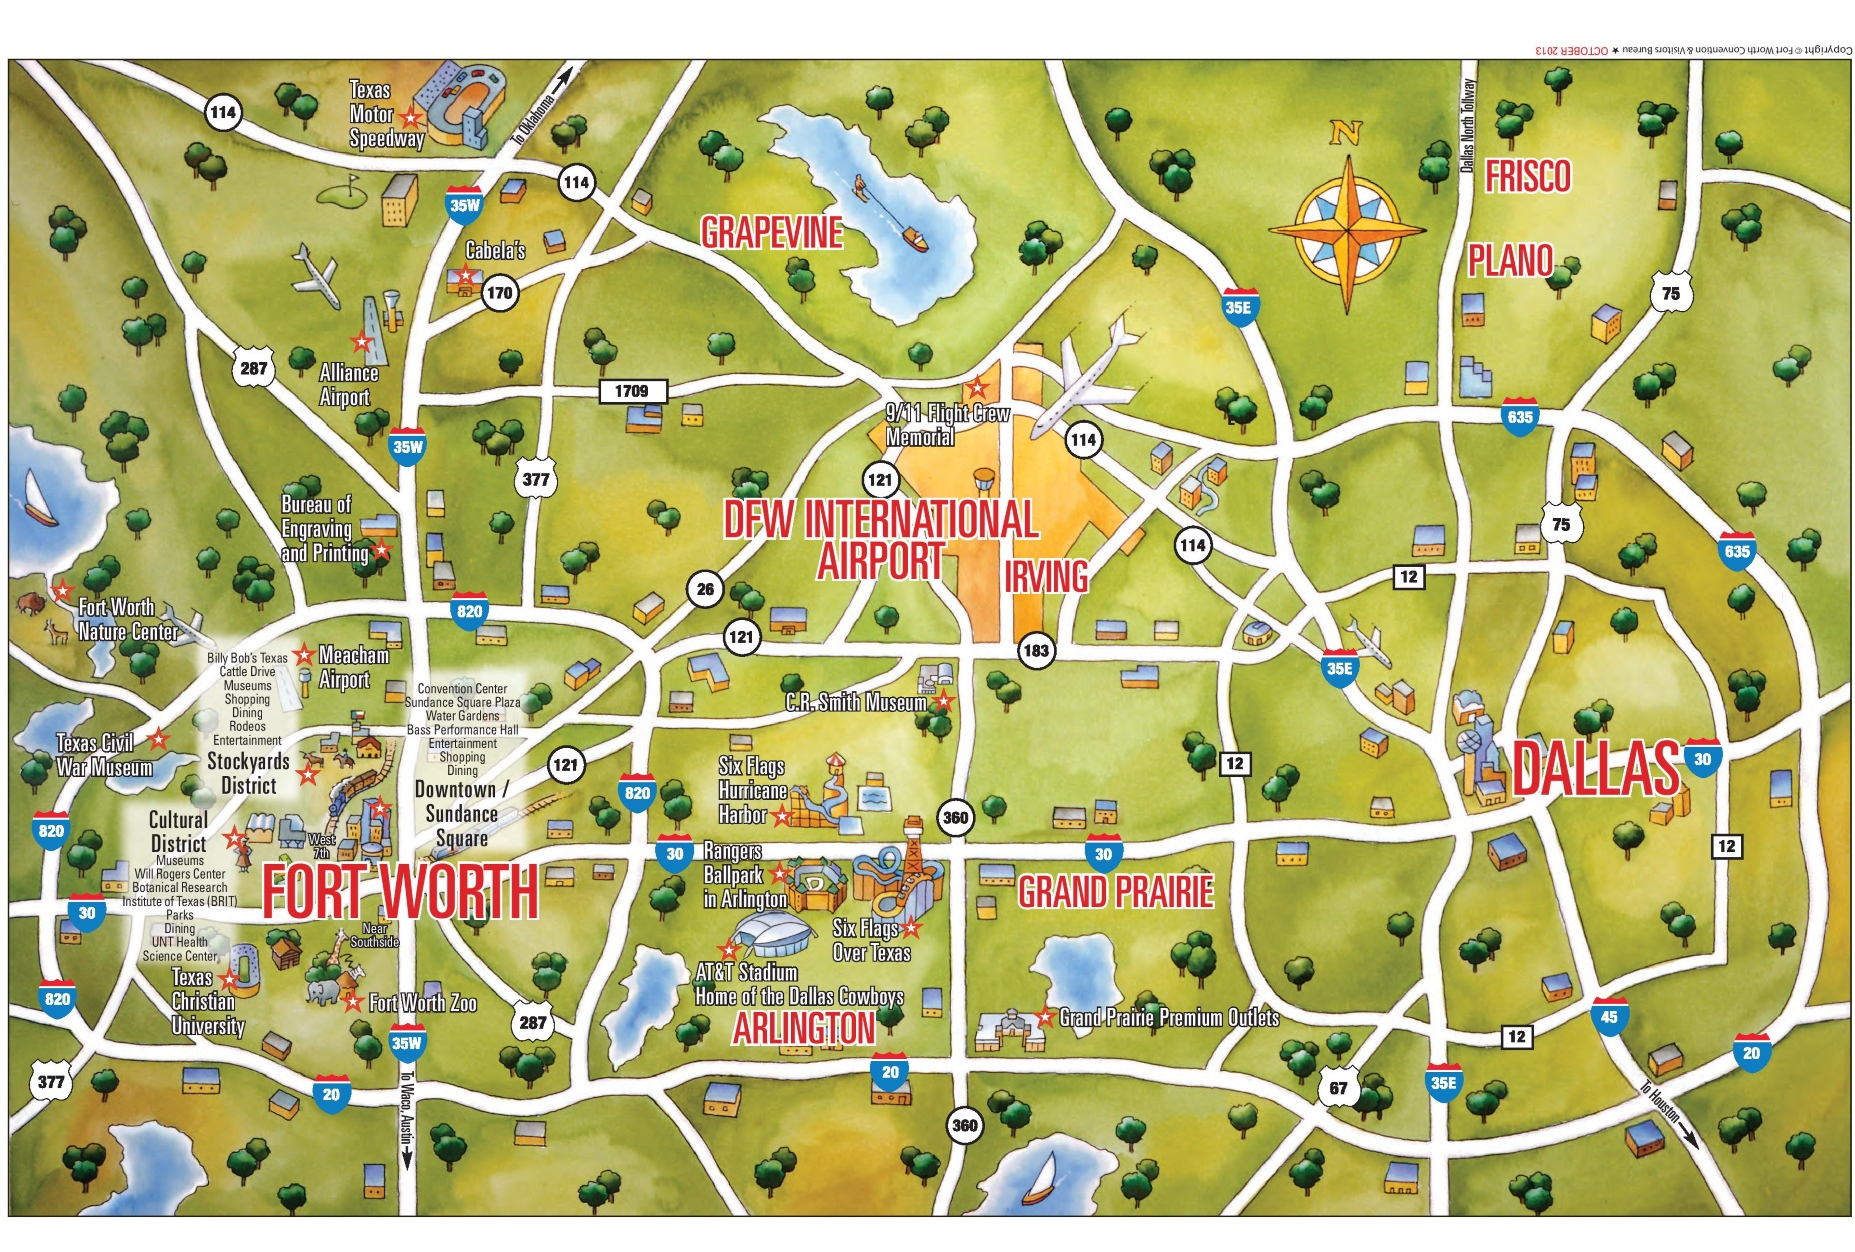 Dallas Maps | Texas, U.s. | Maps Of Dallas - Texas Sightseeing Map